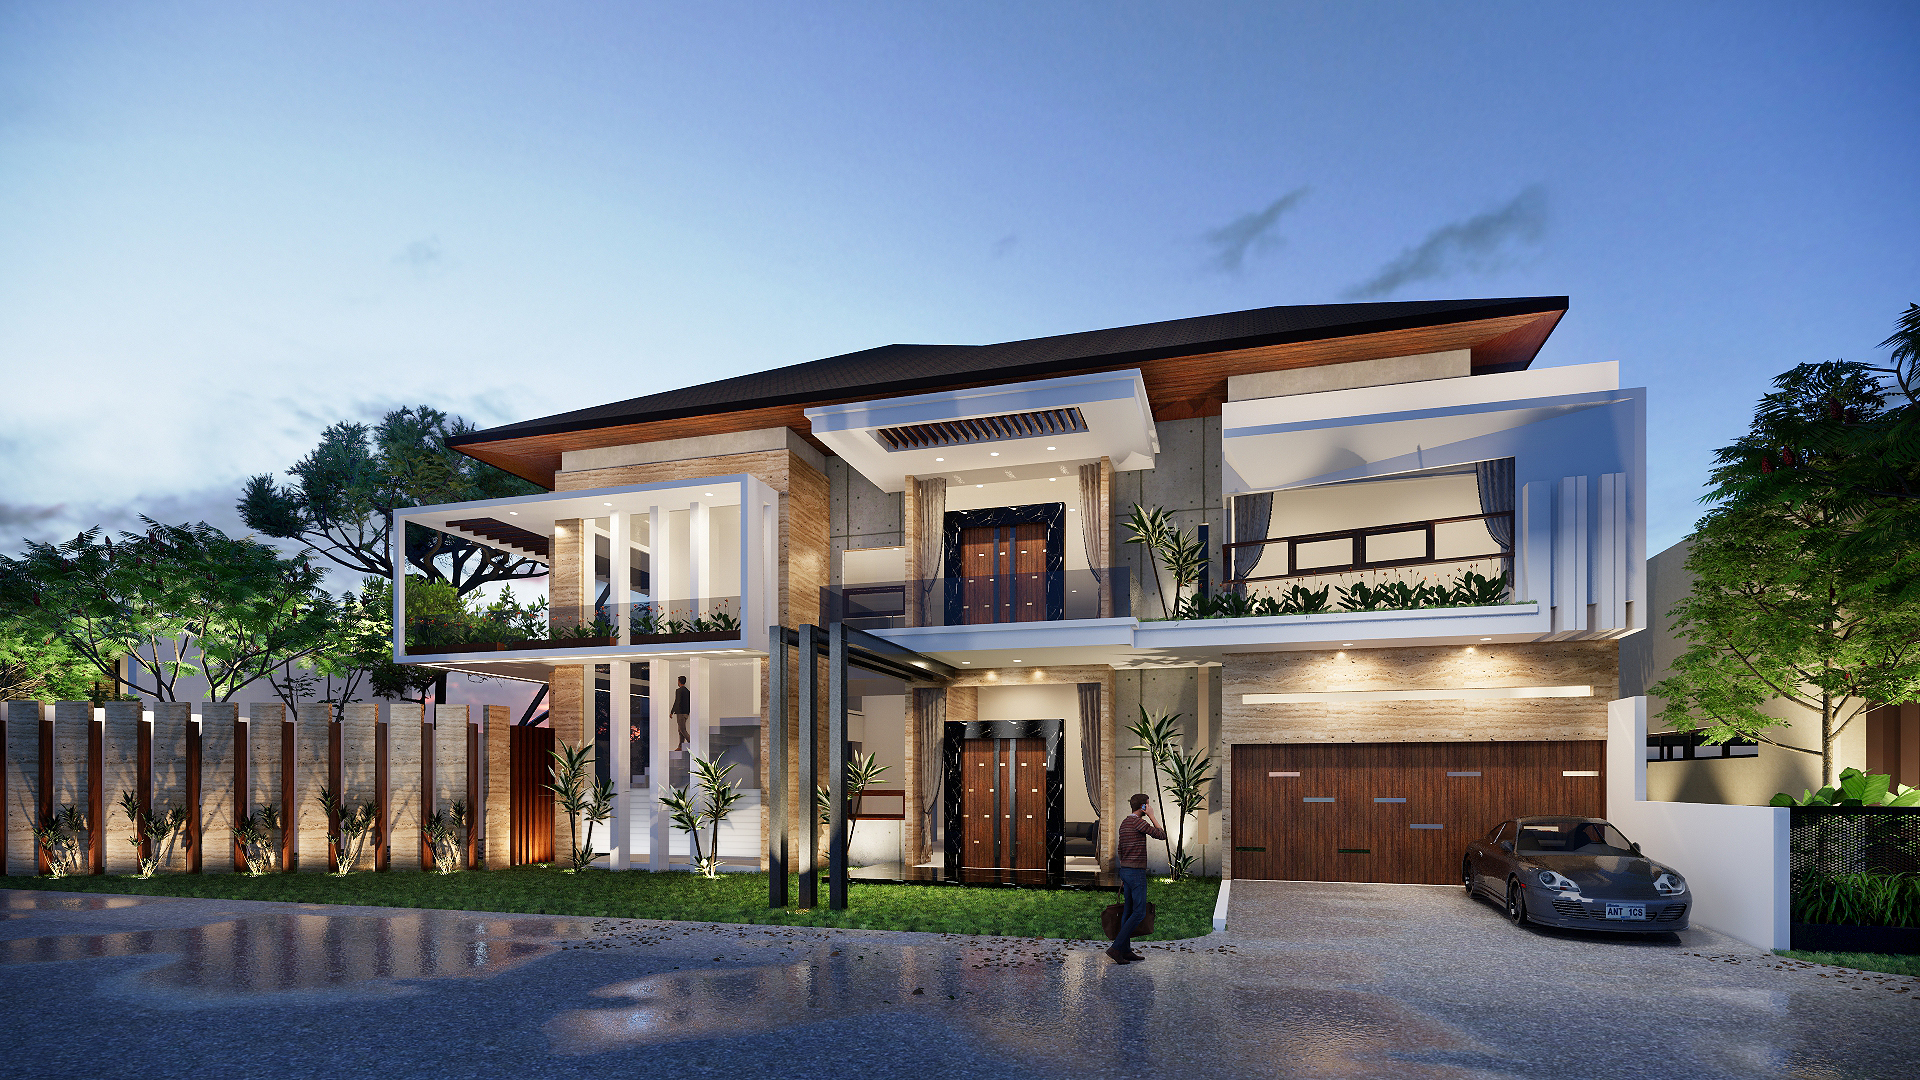 Private mansion design by Enscape user m4m3ts